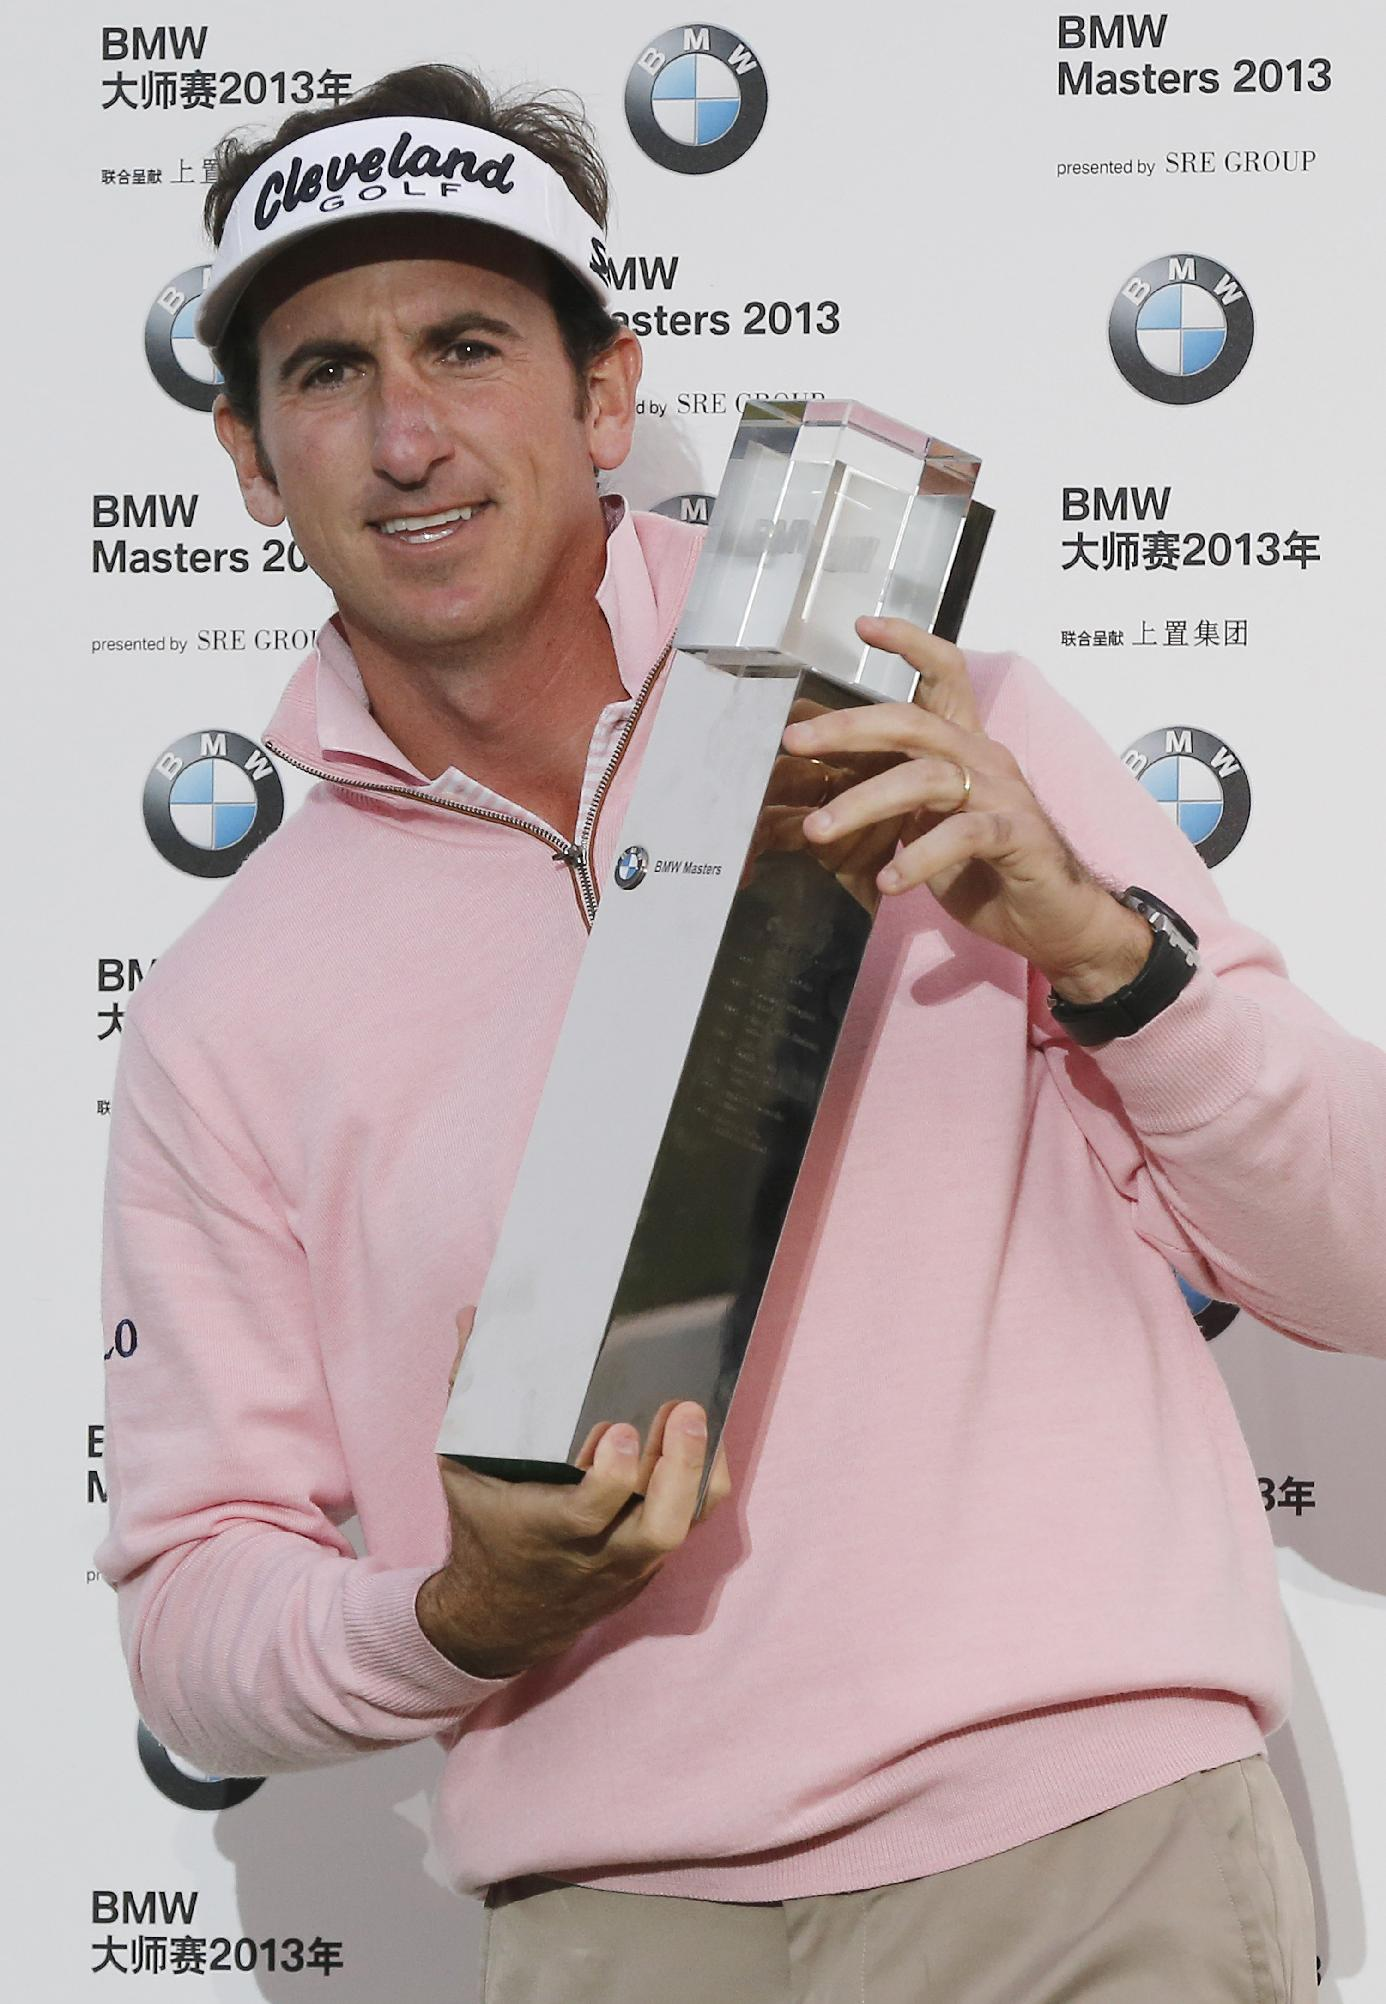 Spain's Gonzalo Fernandez-Castano poses his trophy for photographers during the award ceremony of the BMW Masters golf tournament at the Lake Malaren Golf Club in Shanghai, China, Sunday, Oct. 27, 2013. Fernandez-Castano won the tournament at 11-under 277